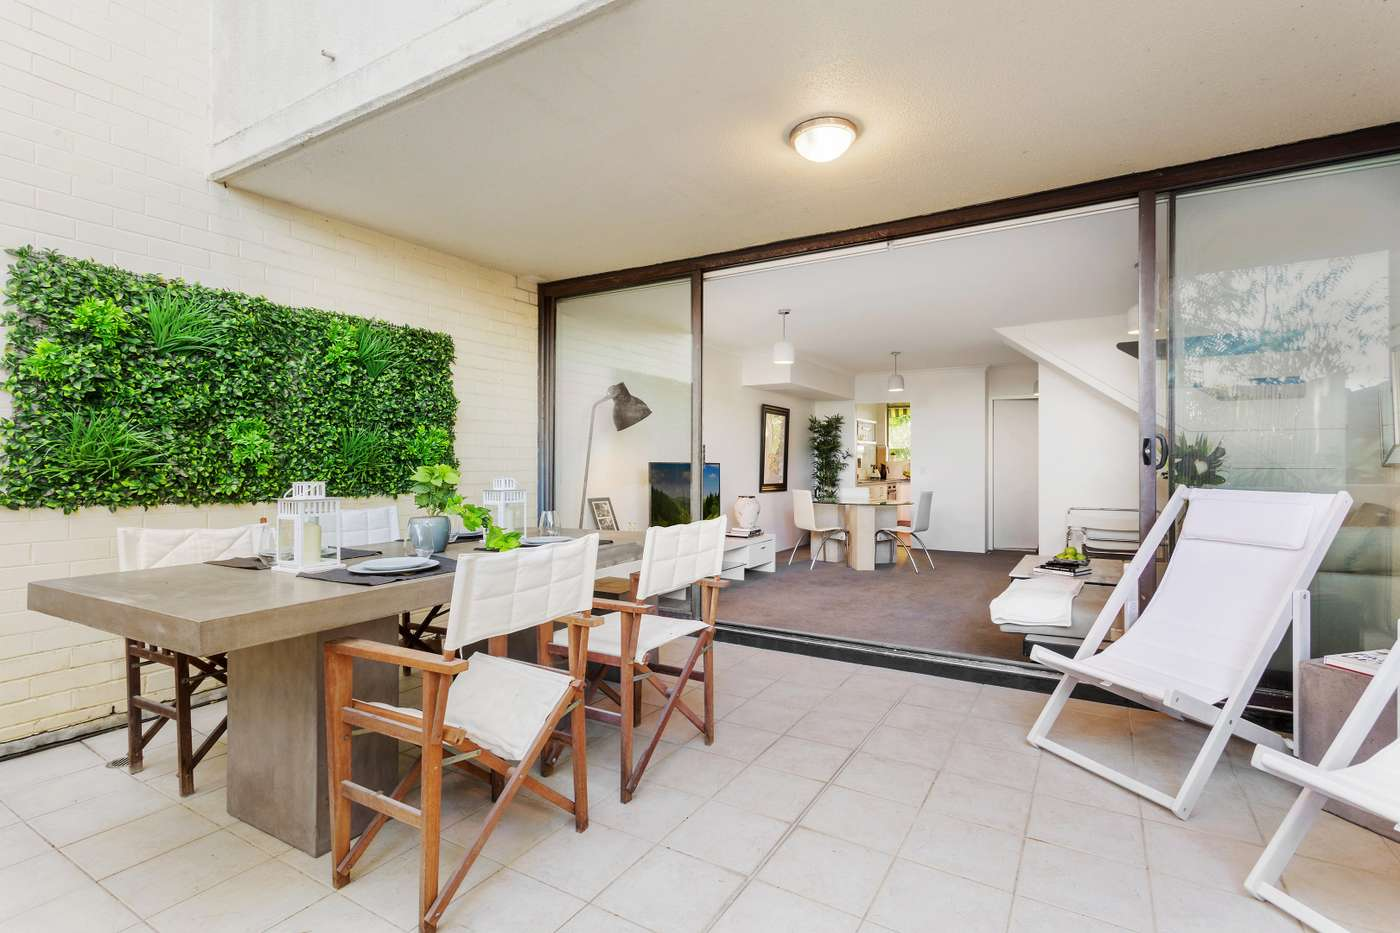 Main view of Homely apartment listing, 12/3 Christie Street, Wollstonecraft, NSW 2065